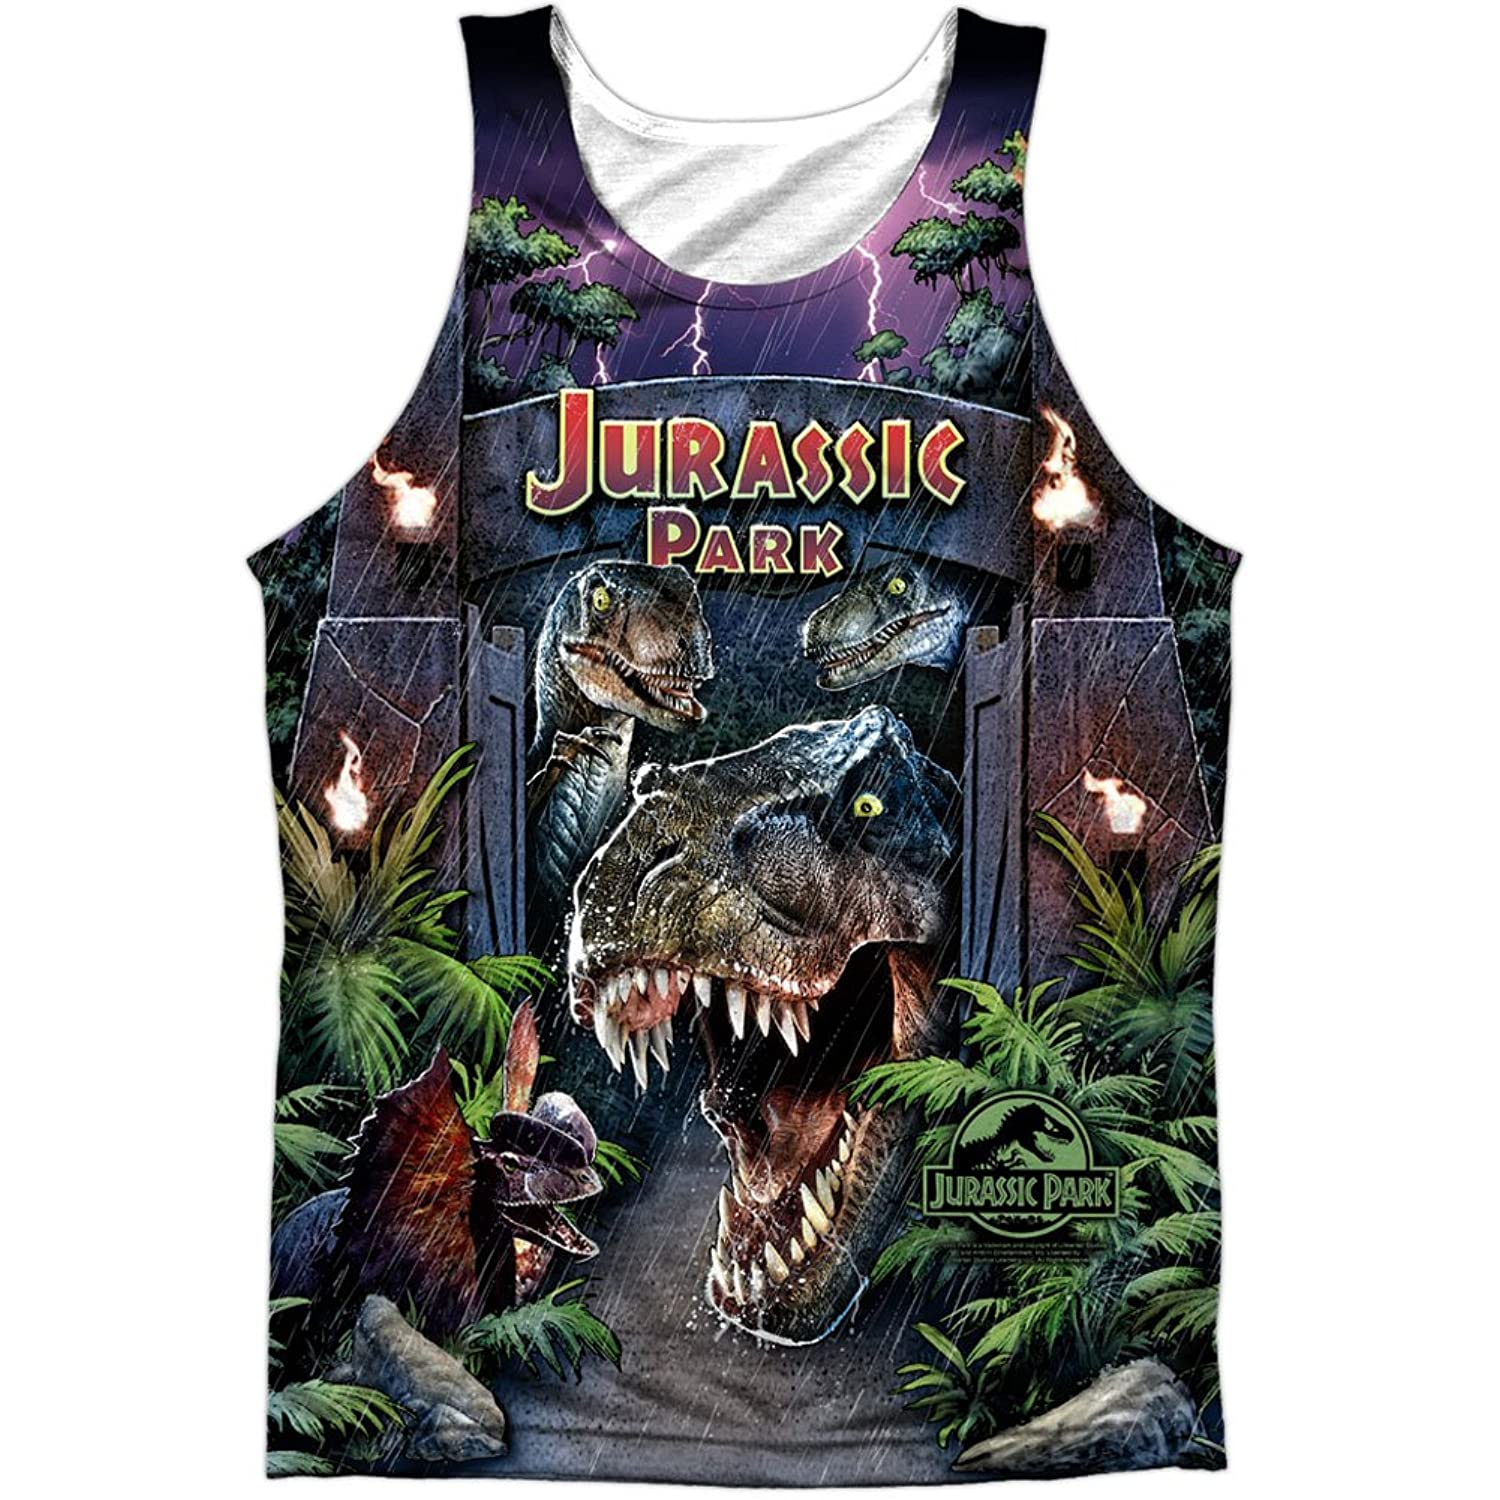 Jurassic Park 1993 Sci-Fi Thriller Movie Welcome Front Print Tank Top Shirt